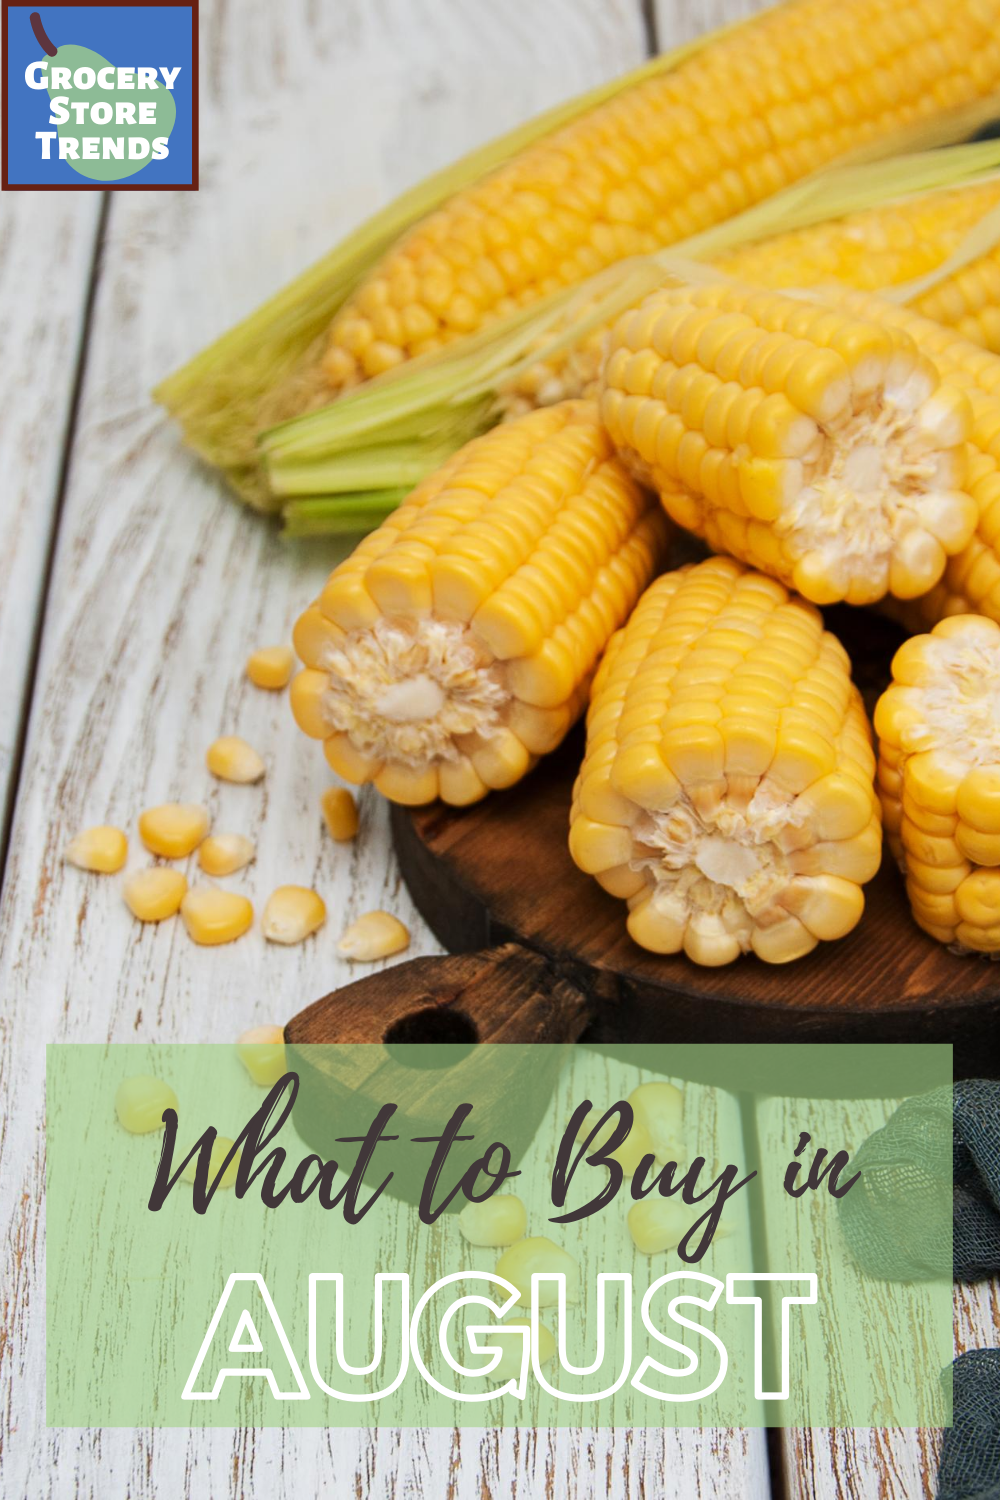 Make the most of your budget by following grocery store trends. Here's a list of what to buy in August, including fruits, vegetables, and other items!